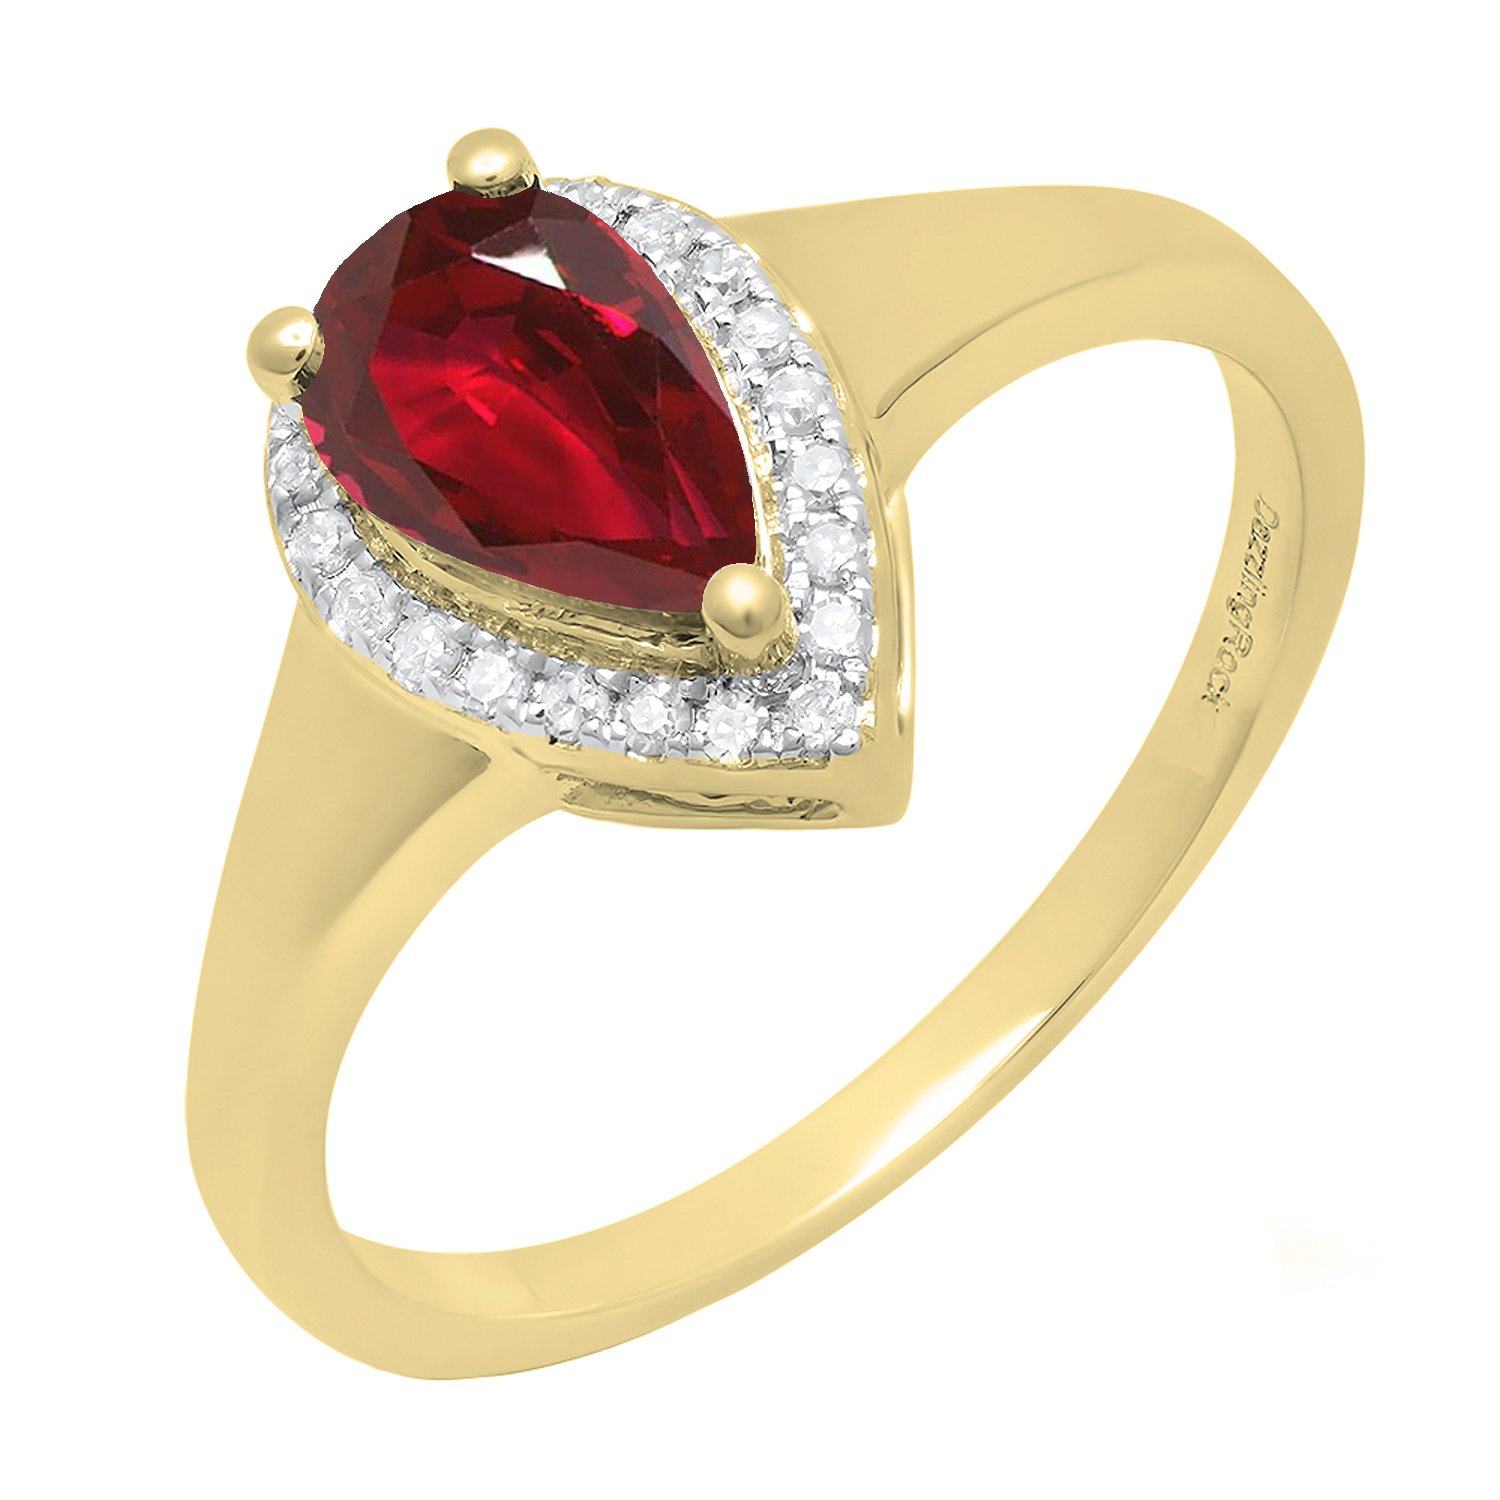 Dazzlingrock Collection 10K 8X5 MM Pear Lab Created Ruby & Round Diamond Ladies Ring, Yellow Gold, Size 7